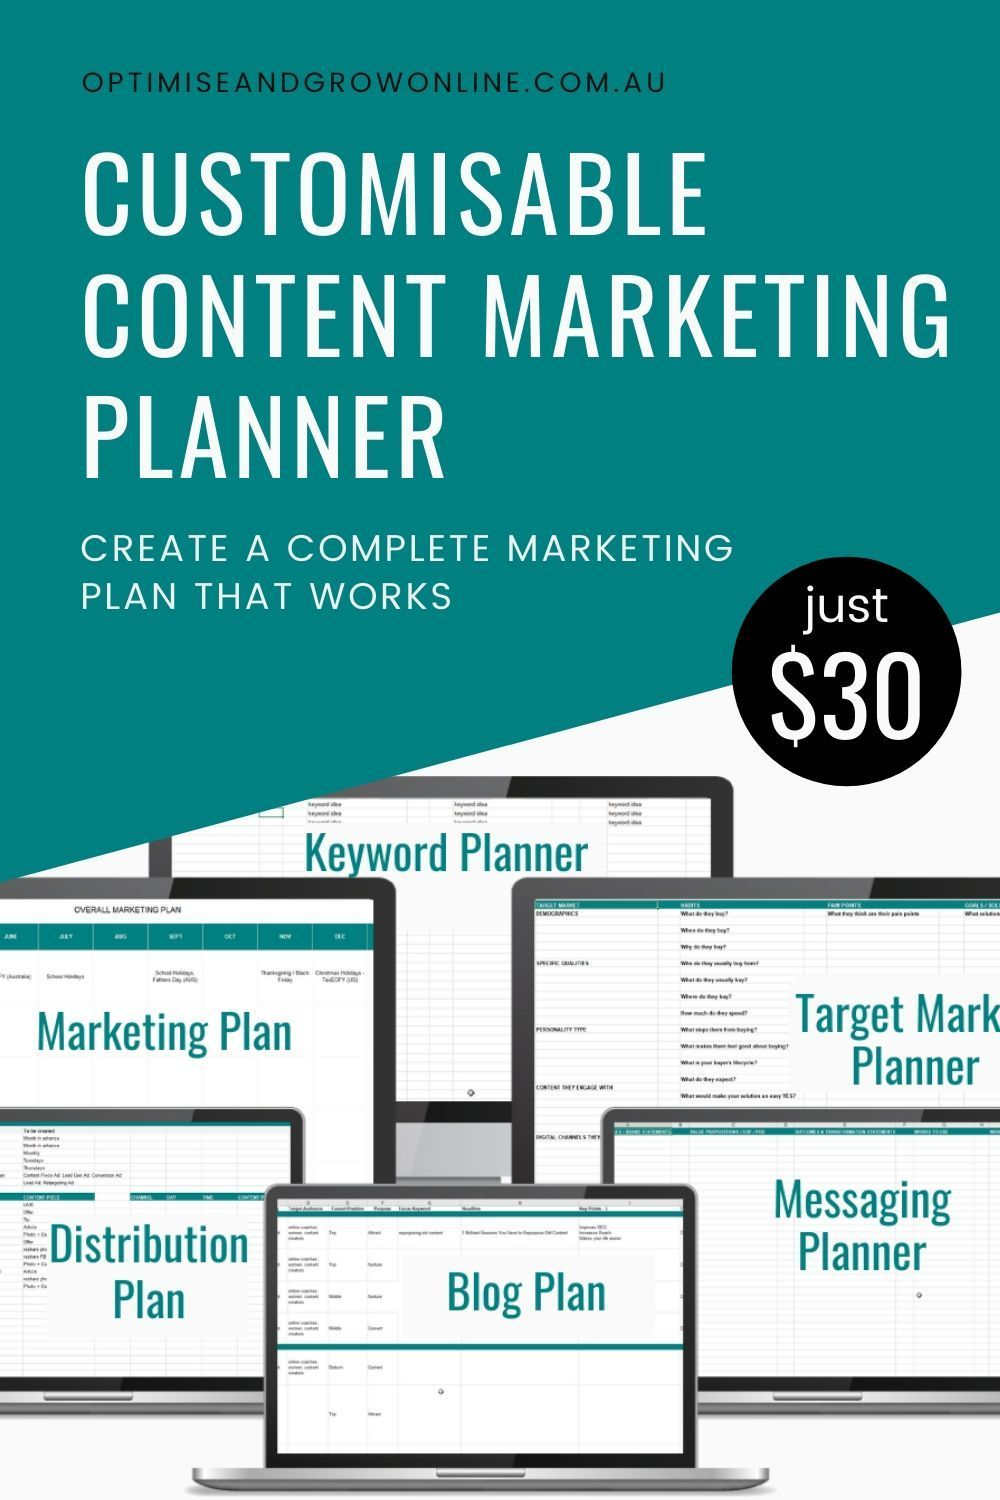 Plan your overall goals, target market, keyword research